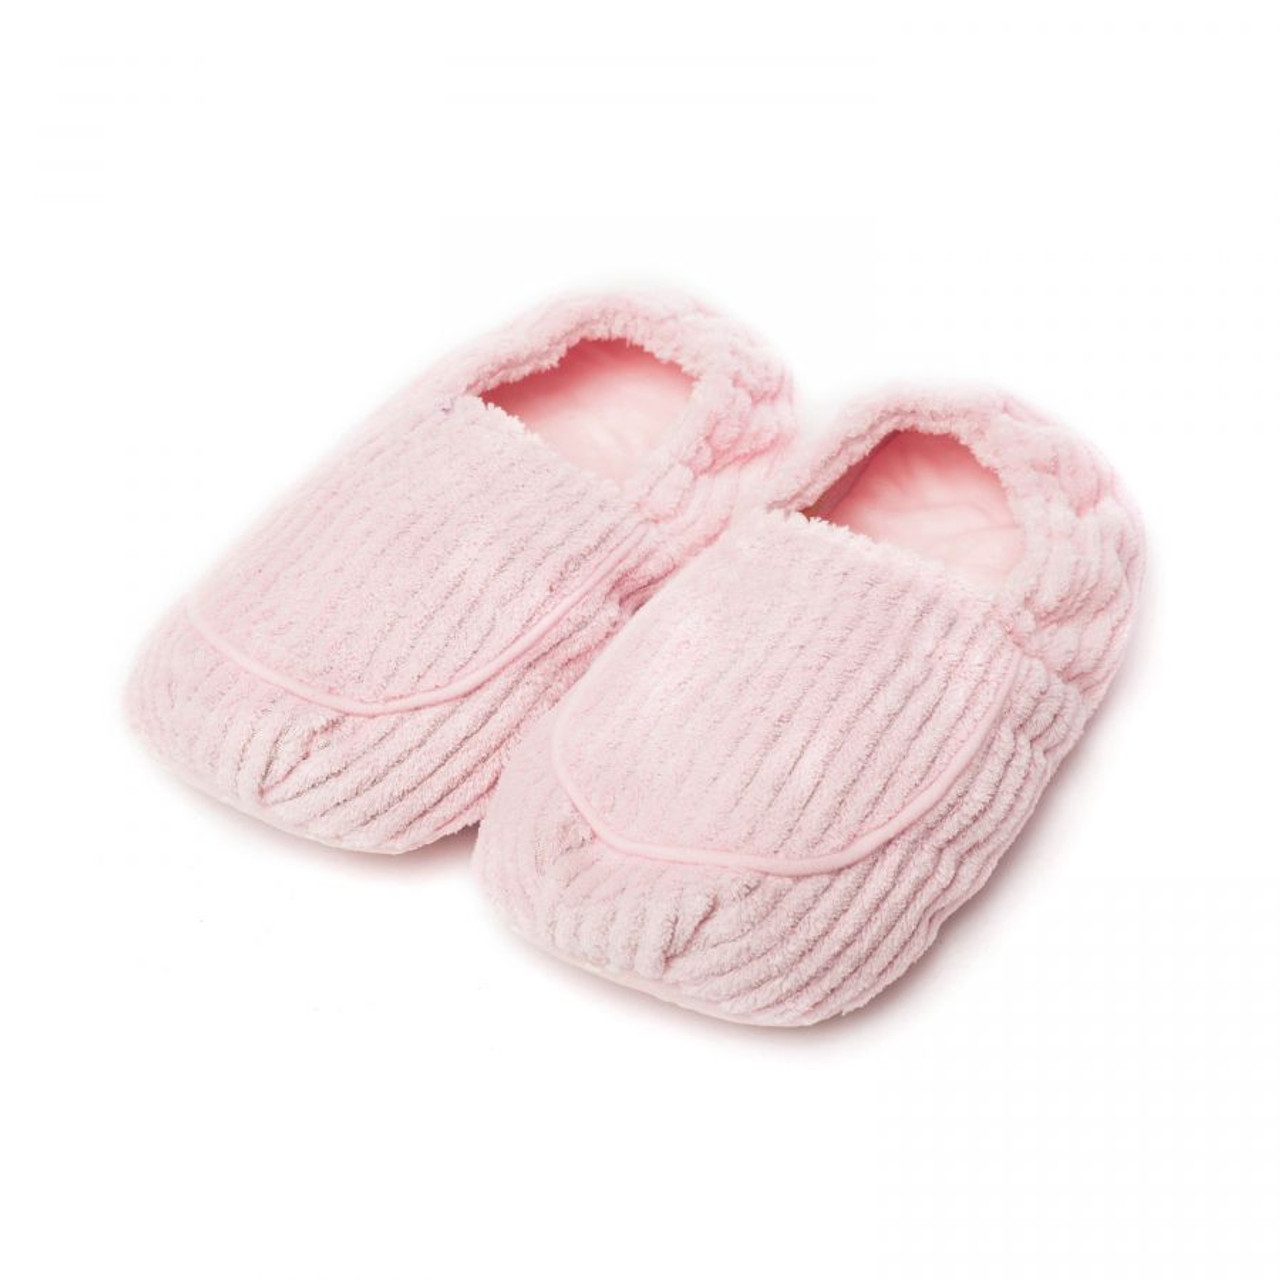 These adorable Warmies® Slippers are made from luxurious soft fur and are gently scented with relaxing French lavender. Simply pop them in a microwave for 90 seconds to provide up to an hour of soothing warmth and comfort. Manufactured to the very highest standards of quality and safety, with proper care these versatile and useful gifts will last for many years. Fits sizes 6-10 US.  Quick Facts:  Fully microwavable Can be reheated thousands of times Gently scented with French lavender Surface clean with a damp sponge Fits sizes 6-10 US